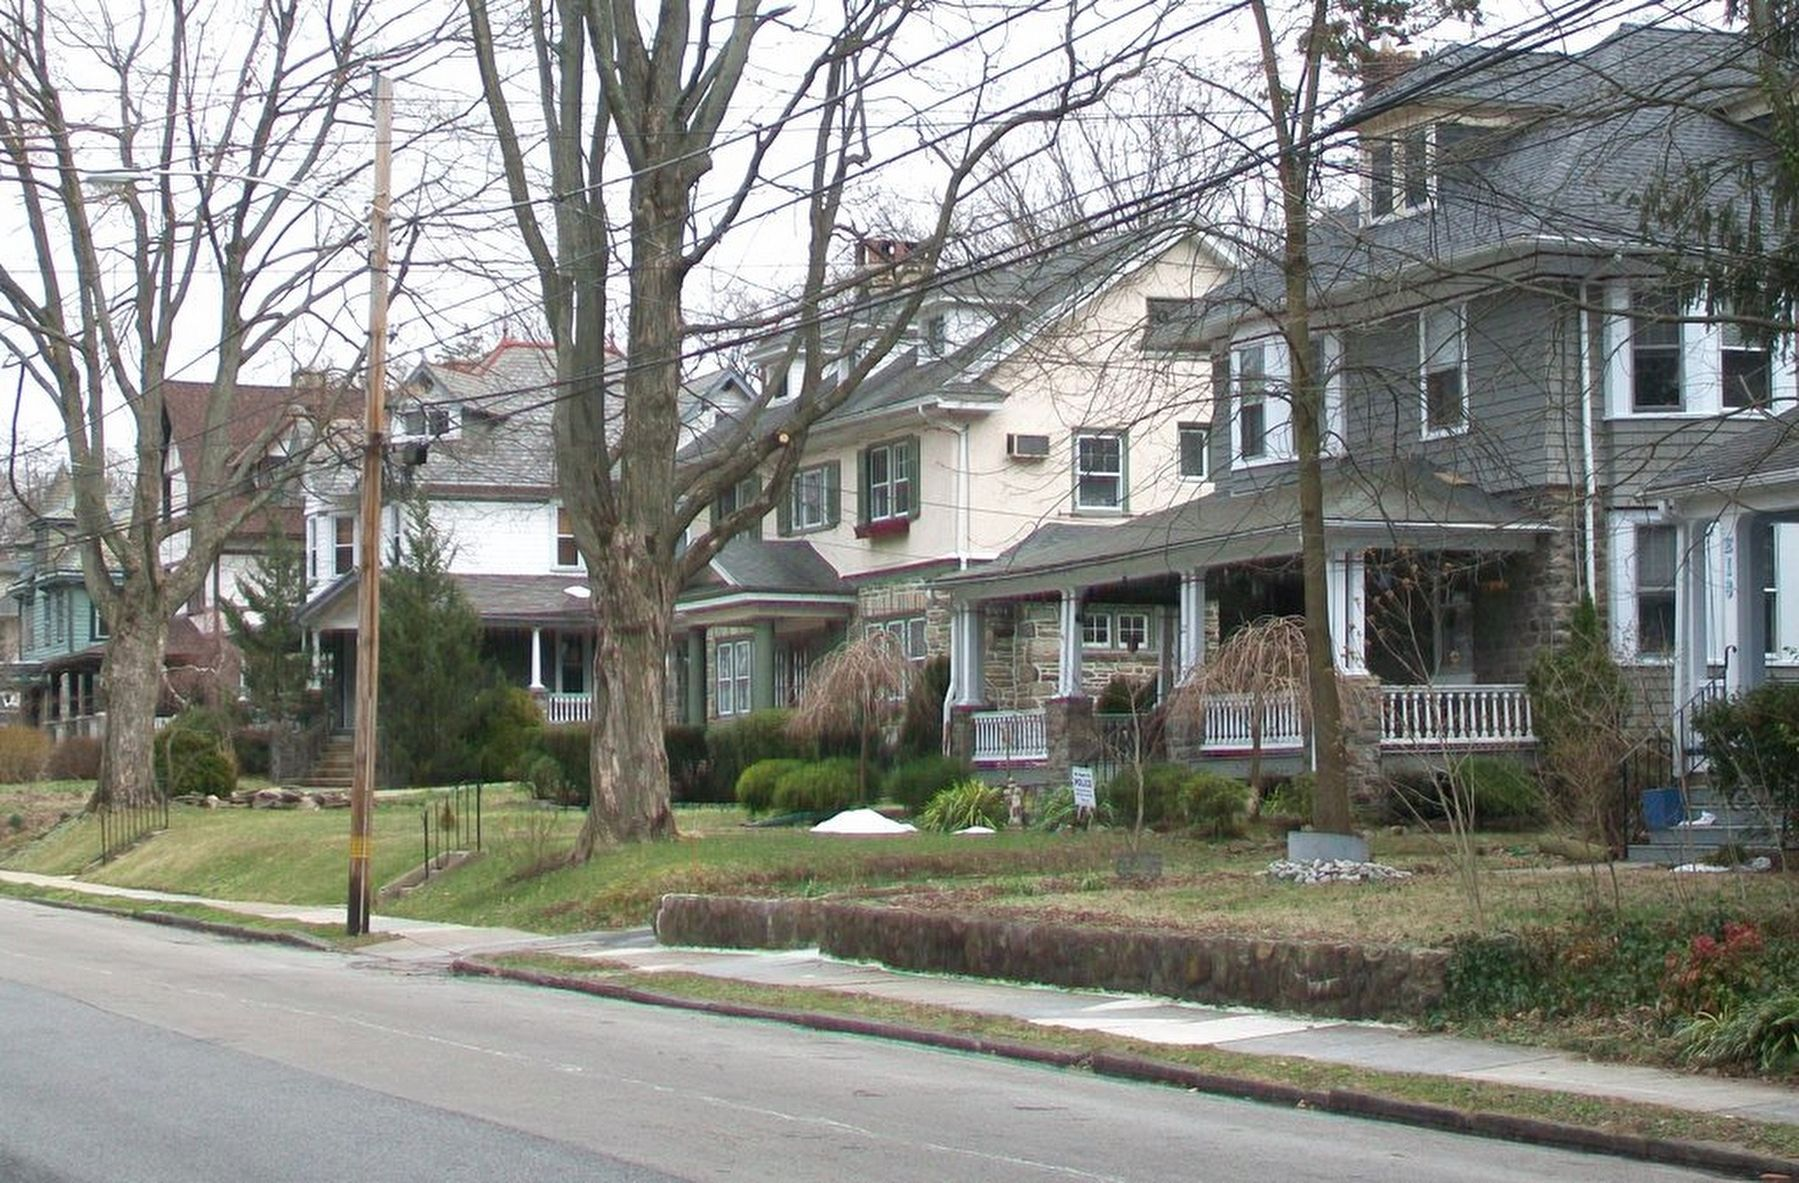 Henry Albertson Subdivision Historic District Homes on Greenwood Avenue image. Click for full size.